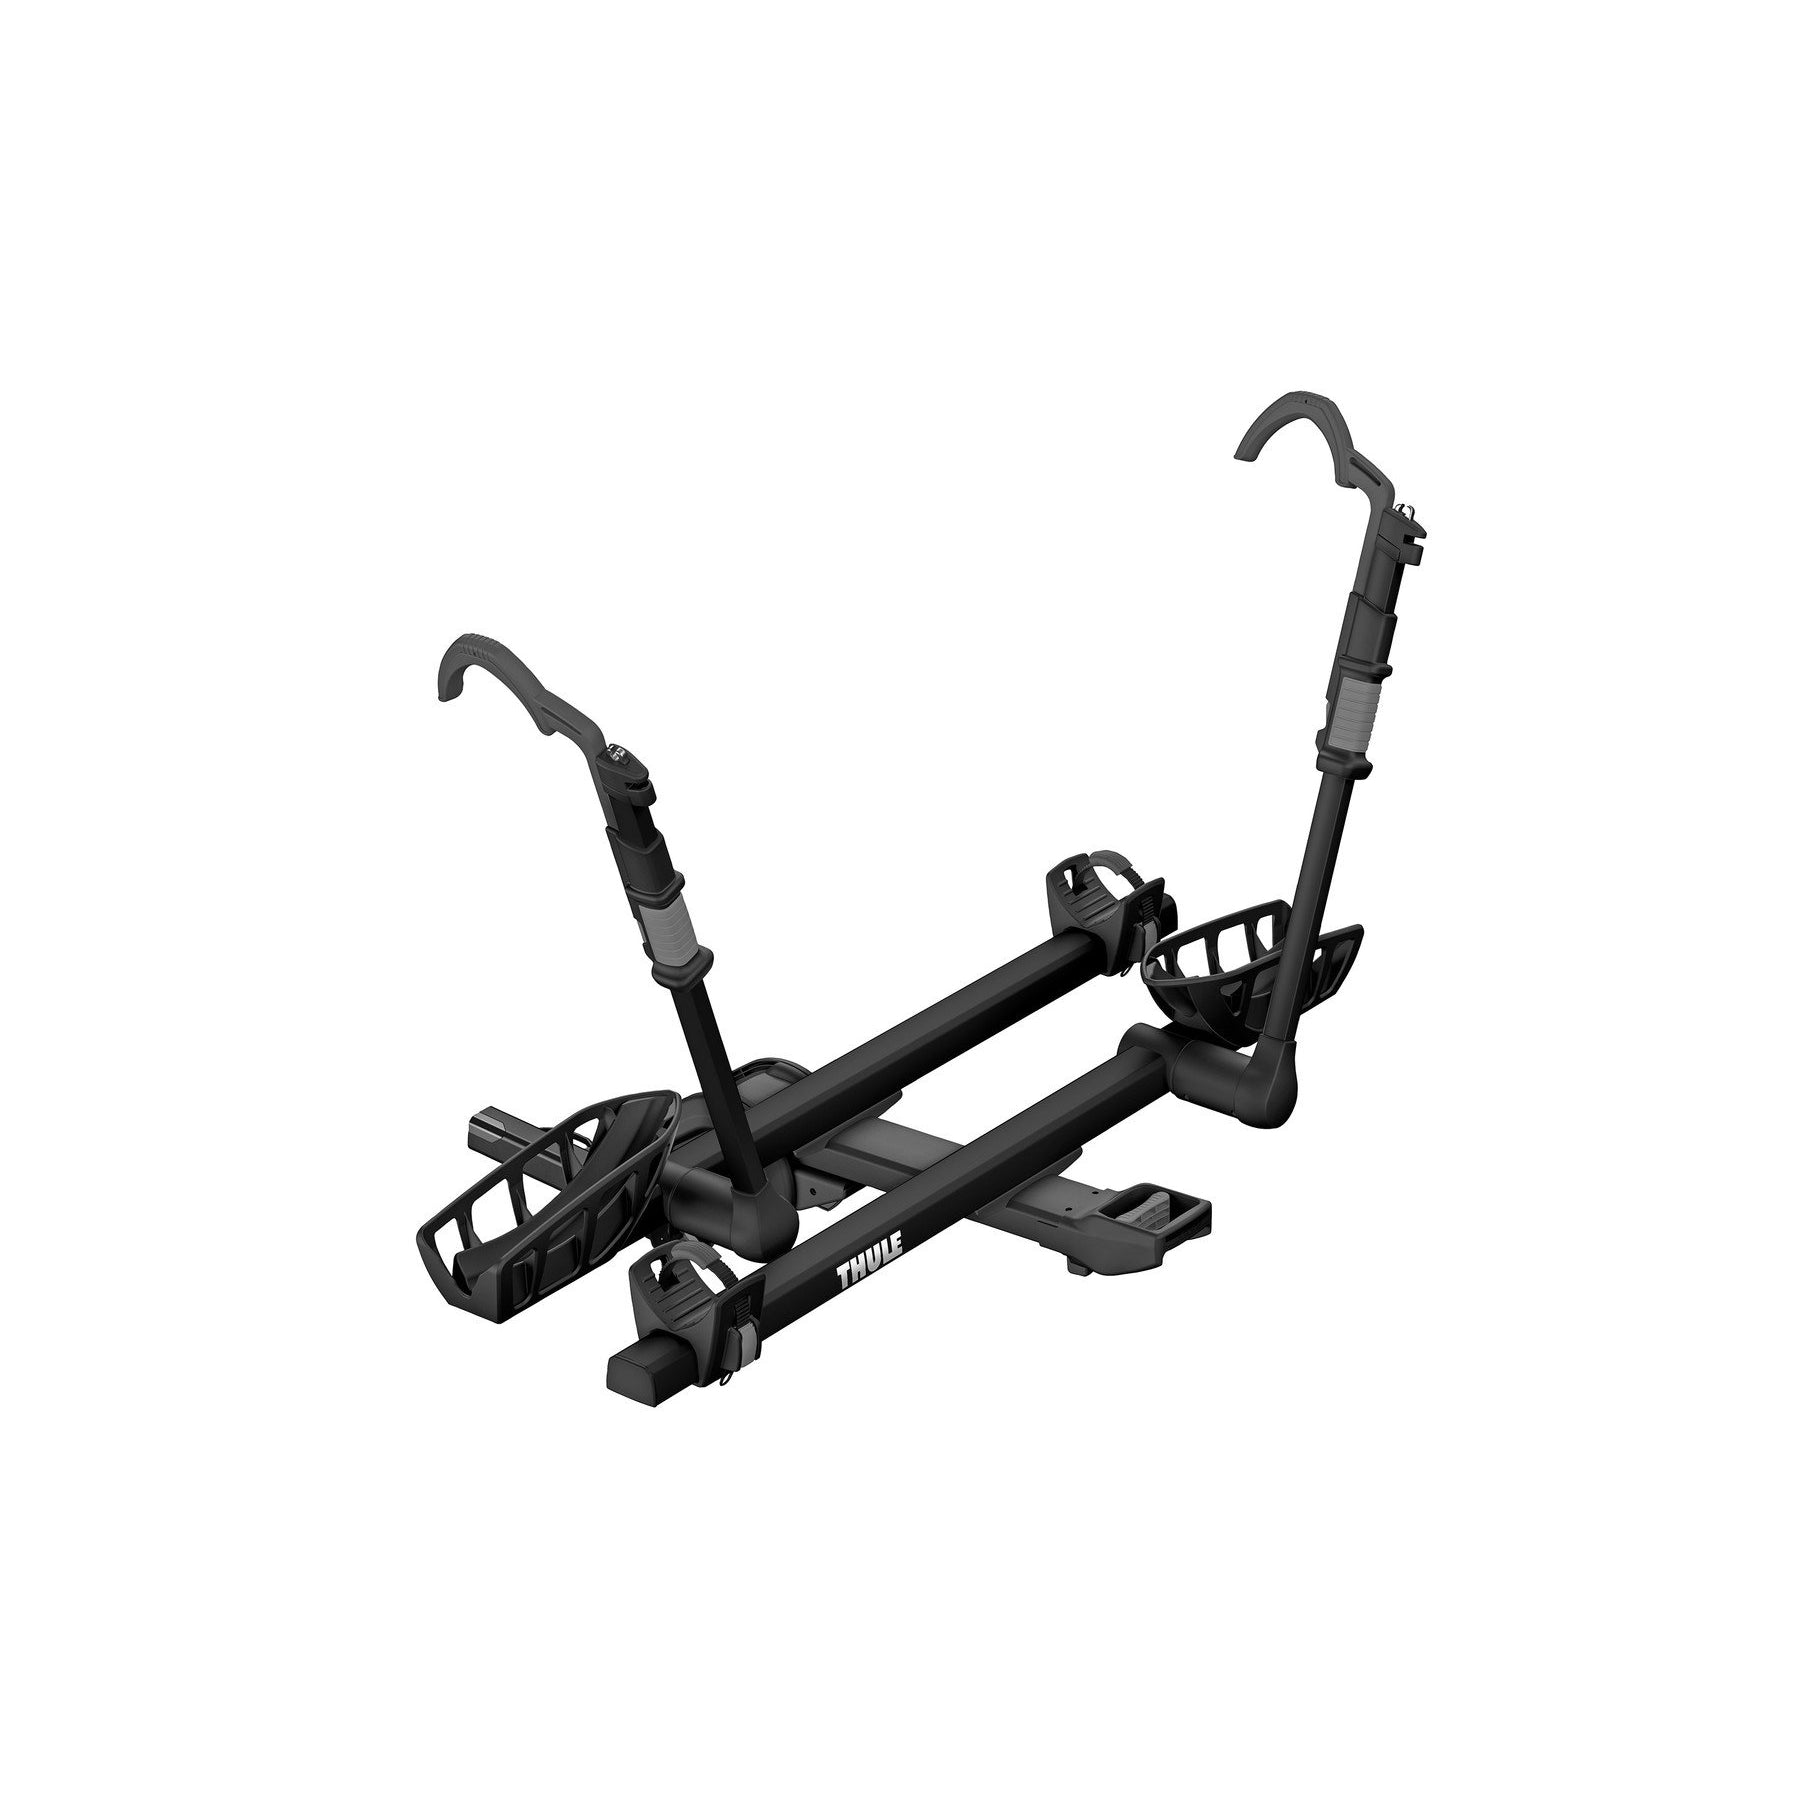 Thule T2 Pro XT 2 Bike Platform Hitch Rack